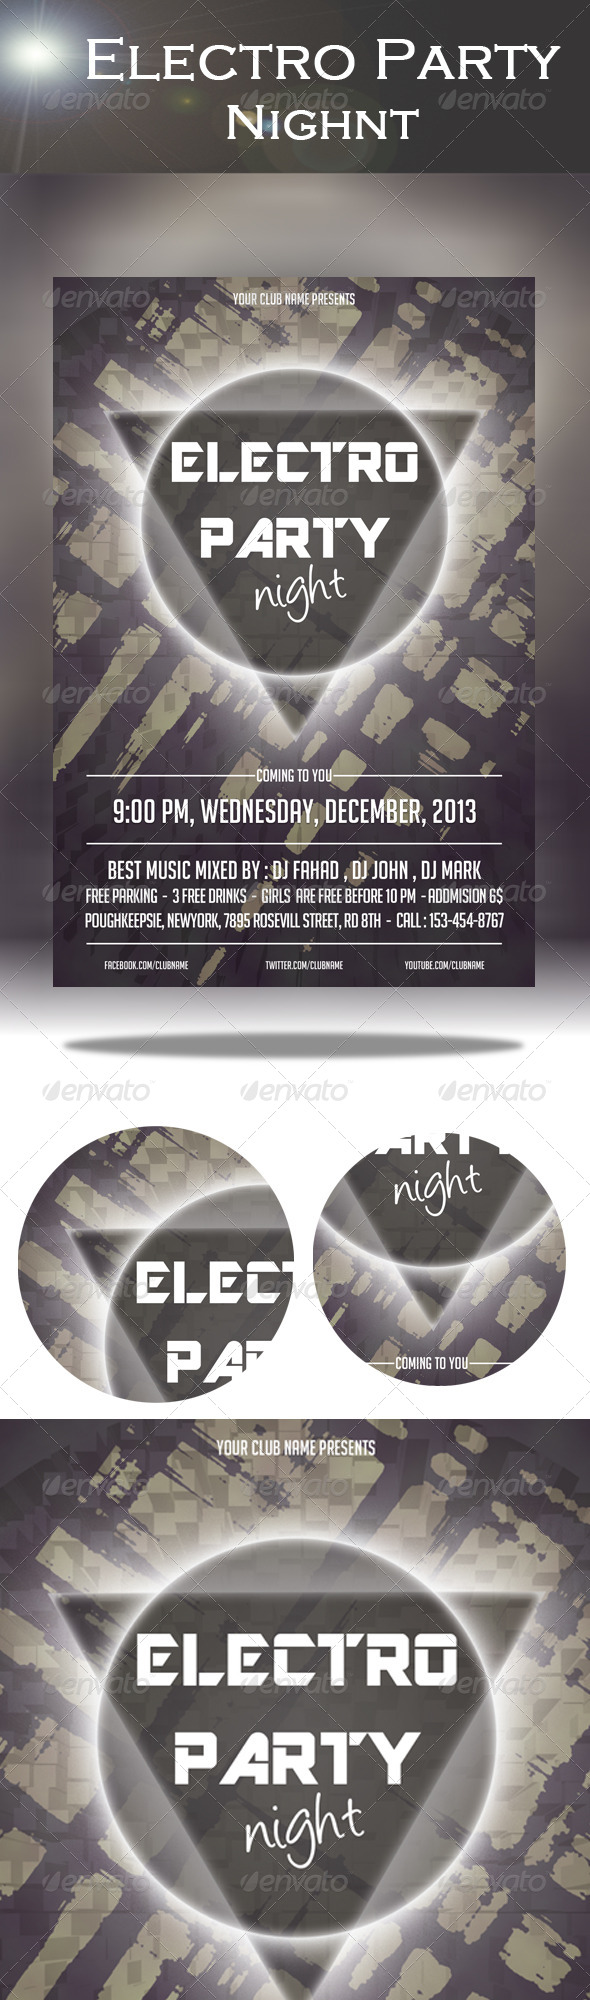 GraphicRiver Electro Party Night Flyer 7939601